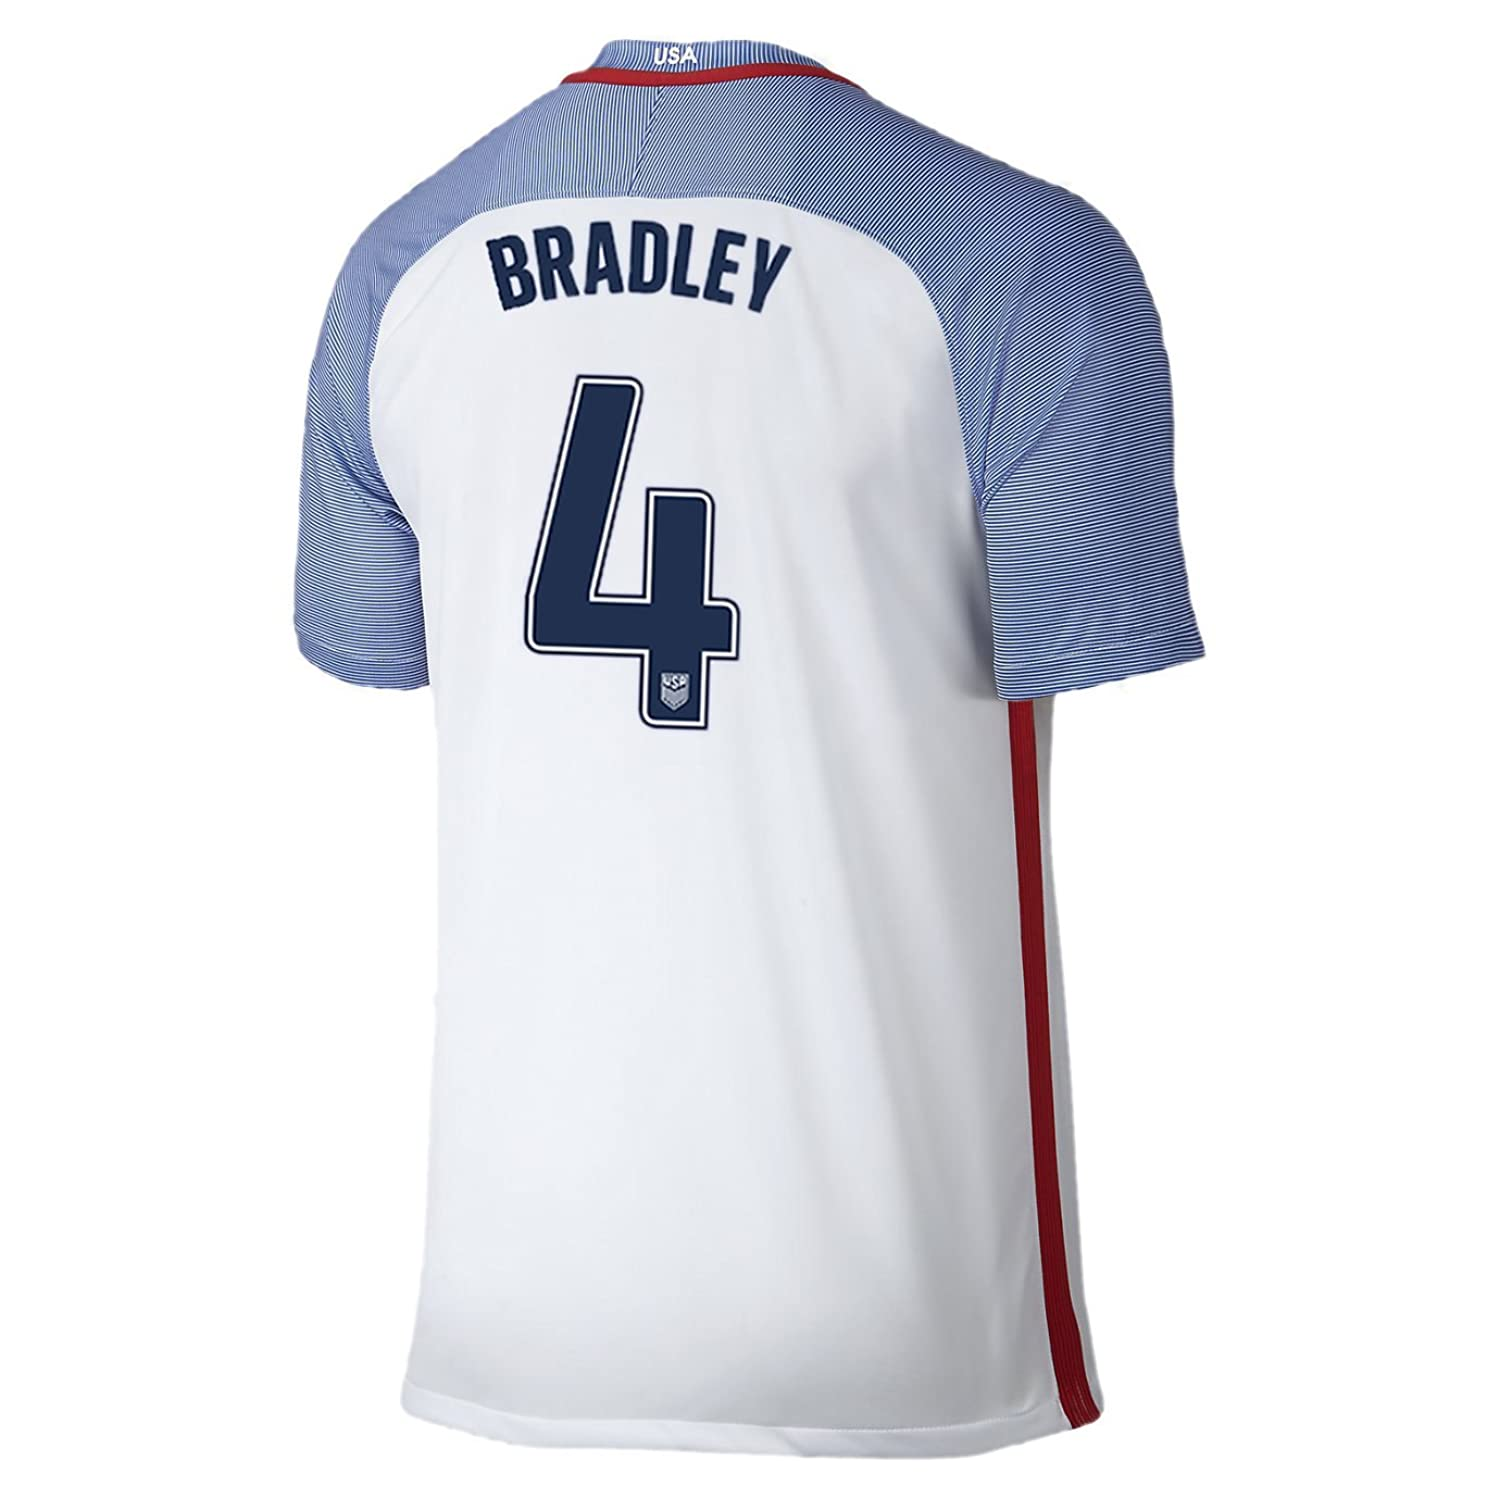 b209f52d5 Usa Soccer Shirt For Sale - Joe Maloy